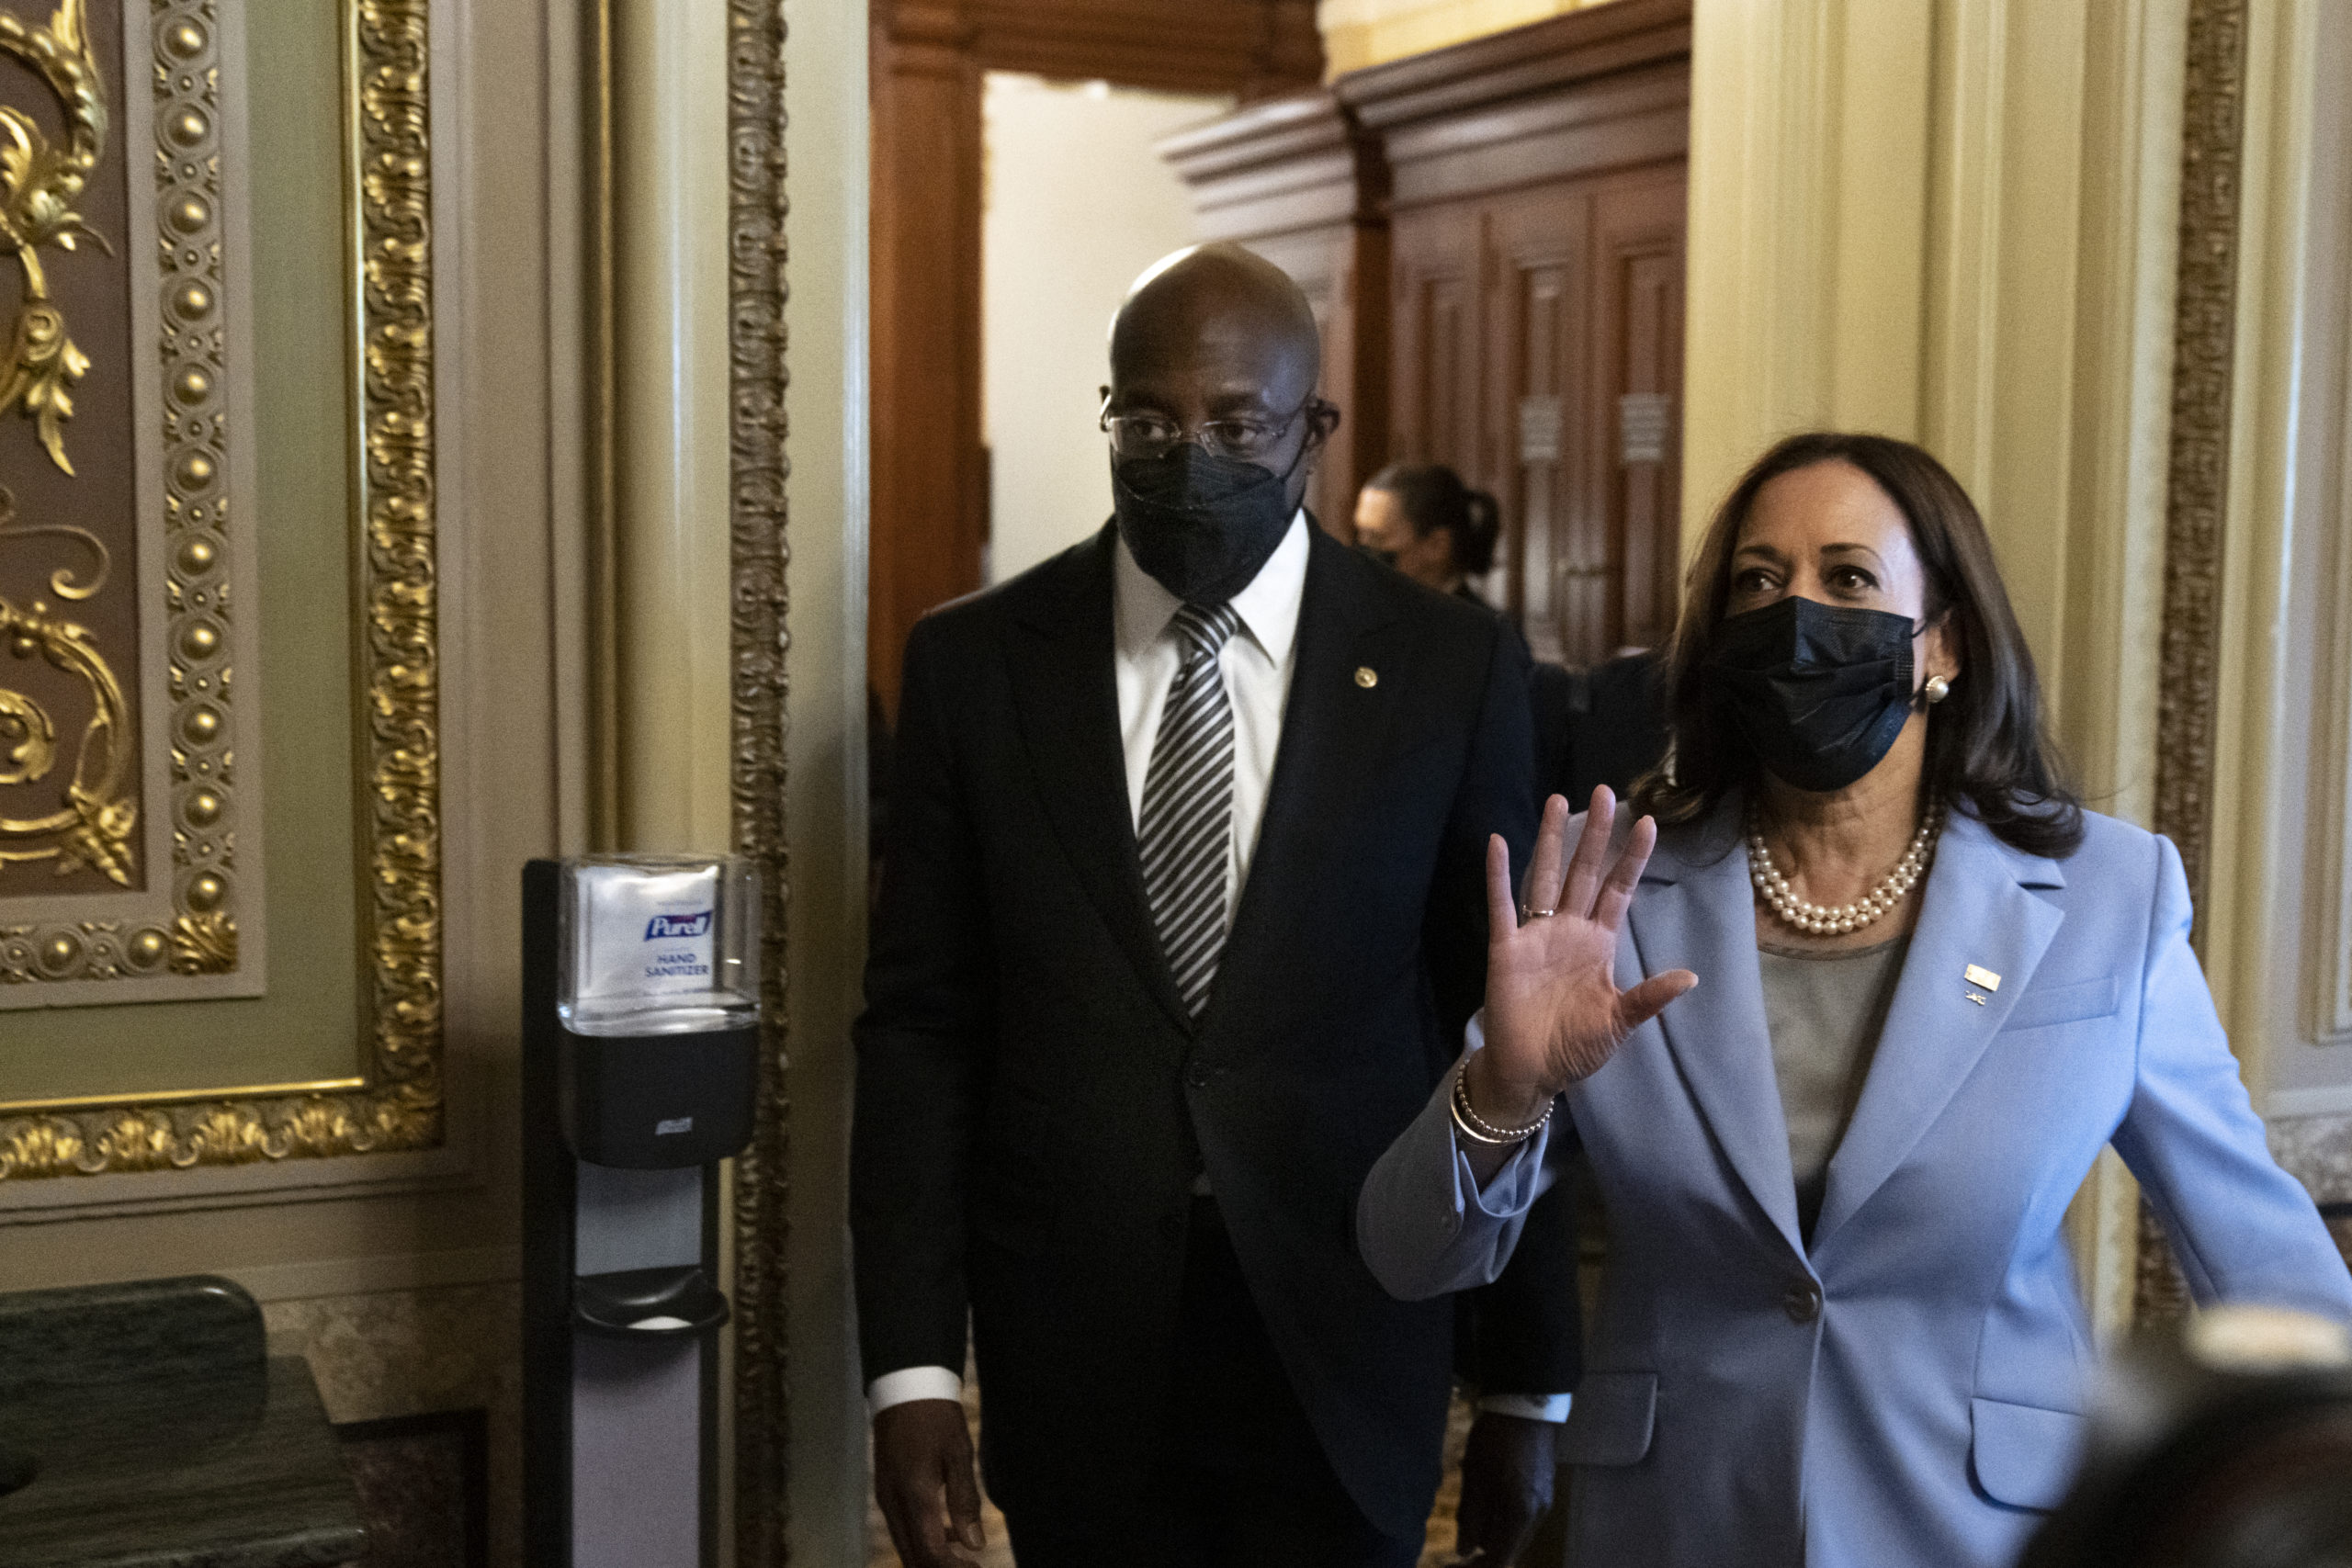 Sen. Raphael Warnock (D-GA) and U.S. Vice President Kamala Harris exit a meeting with family members of former President Lyndon Baines Johnson about voting rights issues at the U.S. Capitol on August 2, 2021 in Washington, DC. The bipartisan group of senators finalized the legislative text of the $1 trillion infrastructure bill over the weekend and will now move on to the amendments process this week. The legislation will fund projects for improvements to roads, bridges, dams, climate resiliency and broadband internet. (Photo by Drew Angerer/Getty Images)